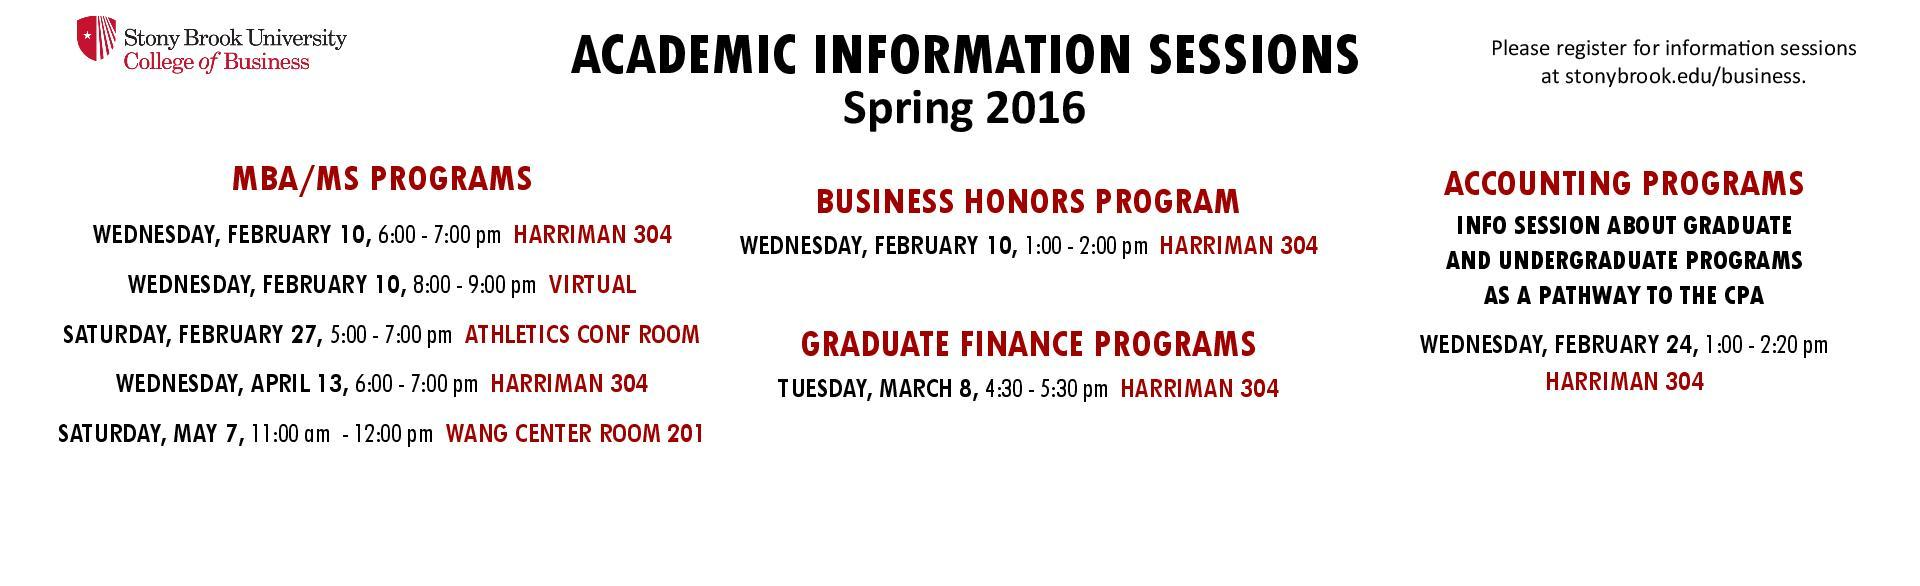 Spring 16 Academic Information Sessions